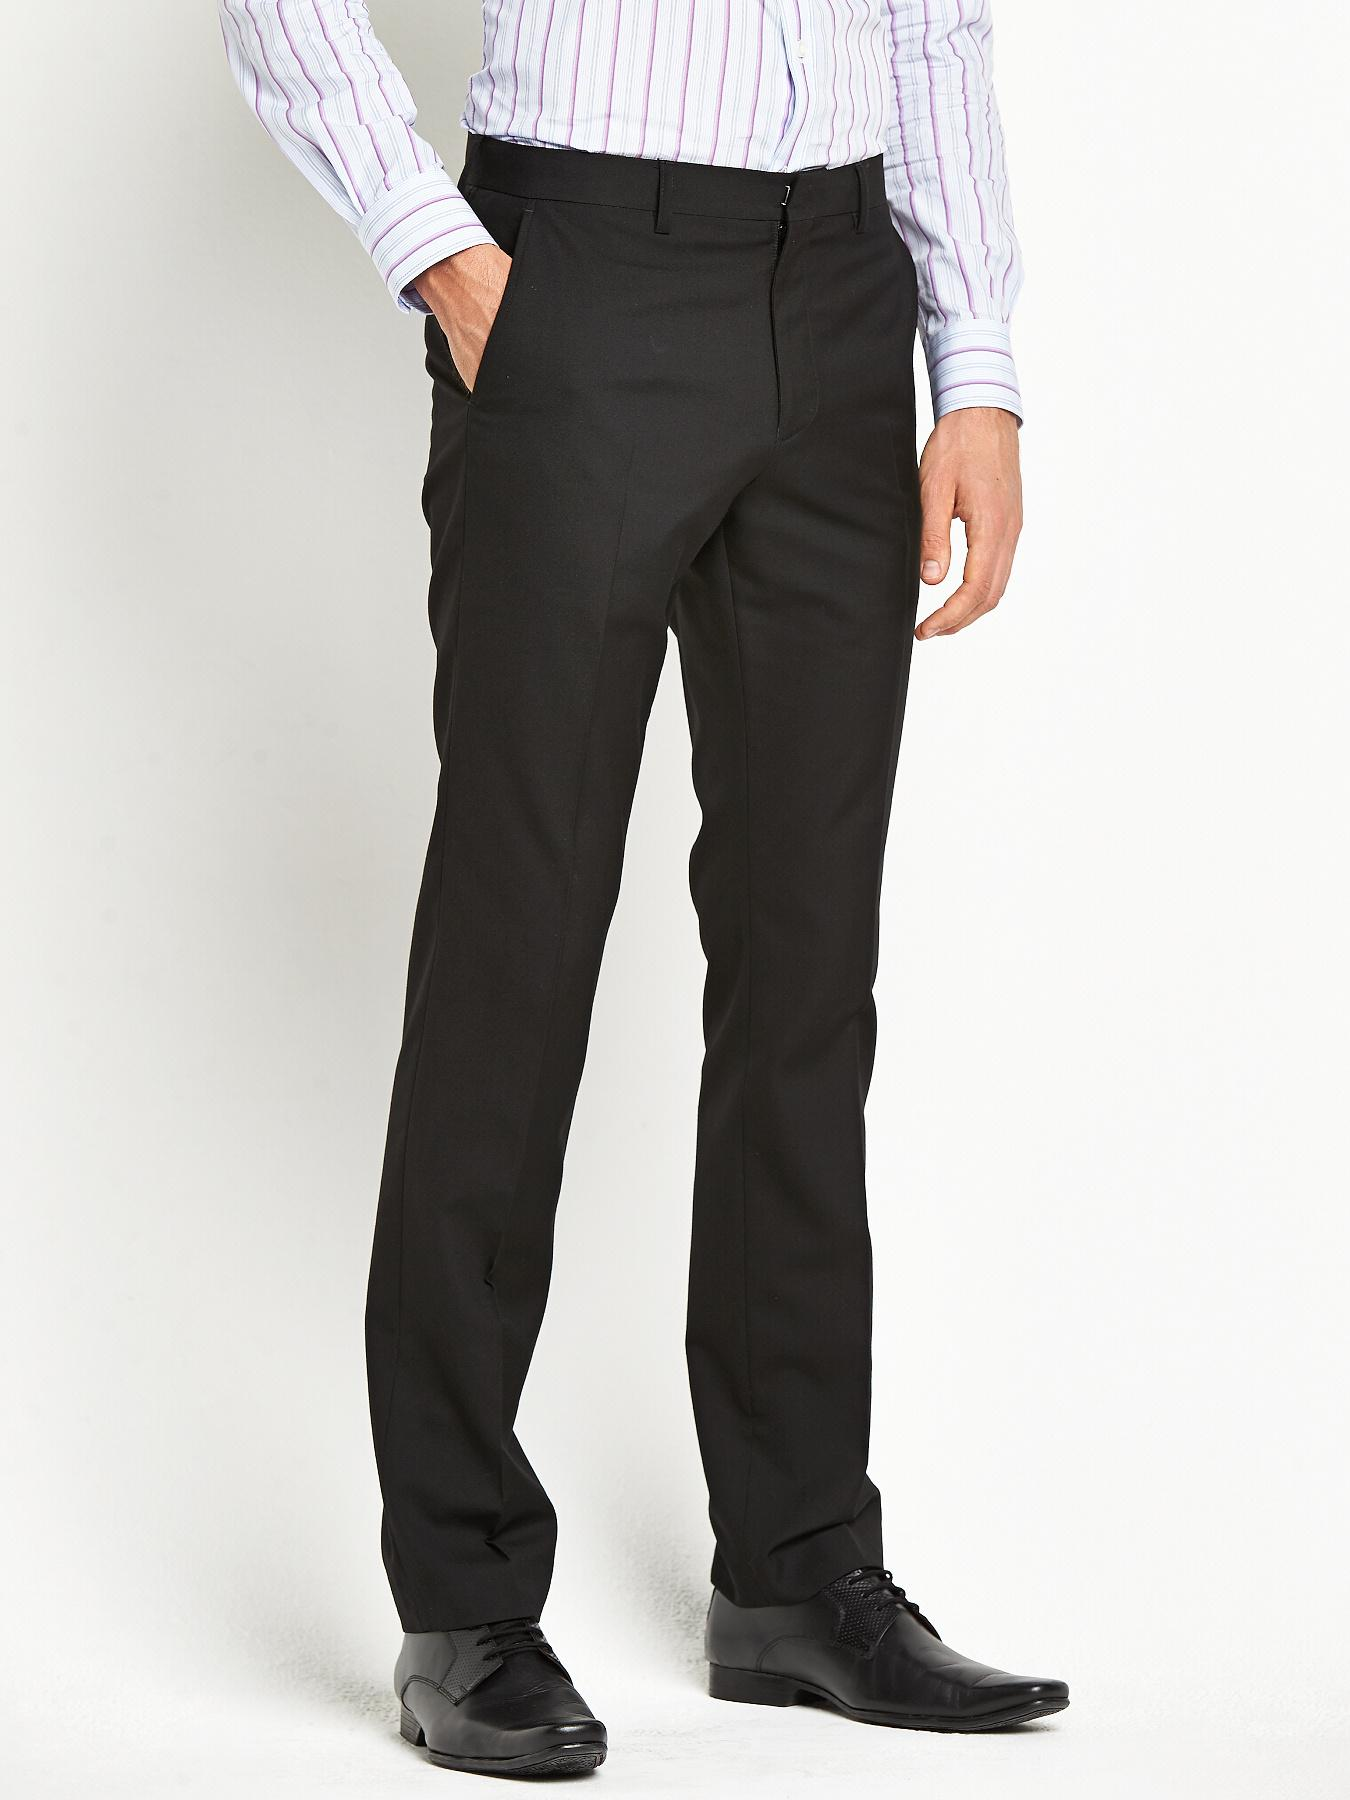 Mens Slim Suit Trousers - Black, Black